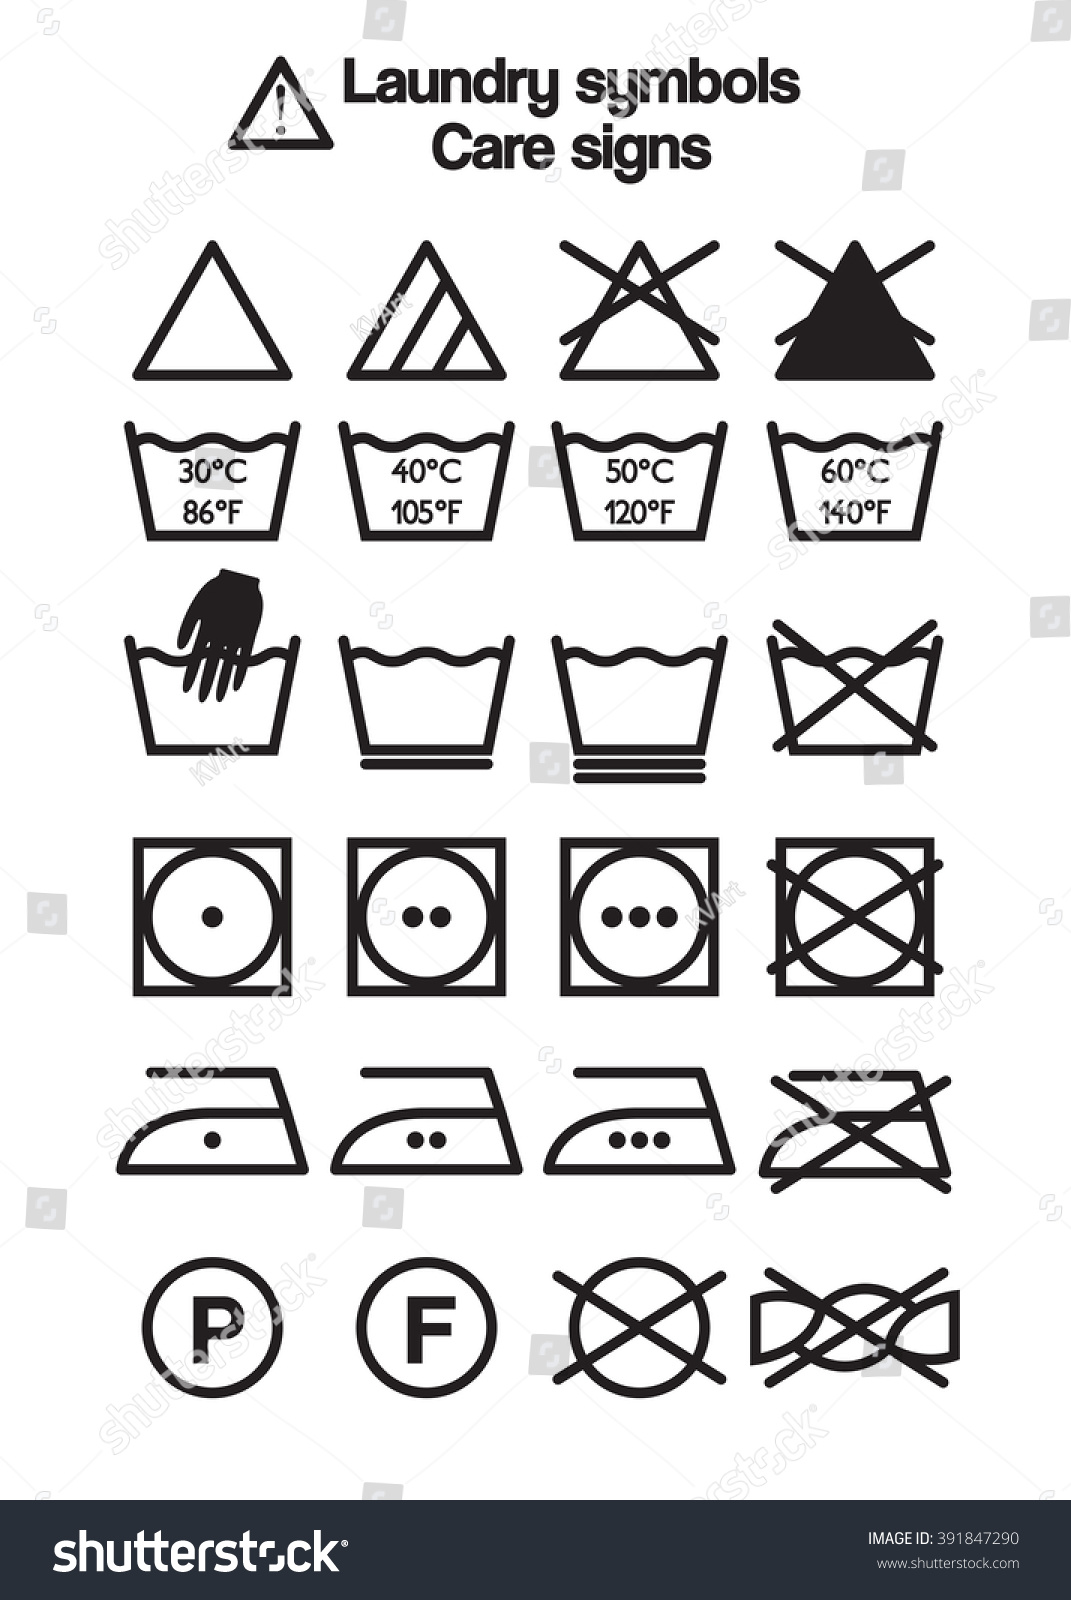 Set Laundry Symbols Care Signs Labels Stock Vector Royalty Free